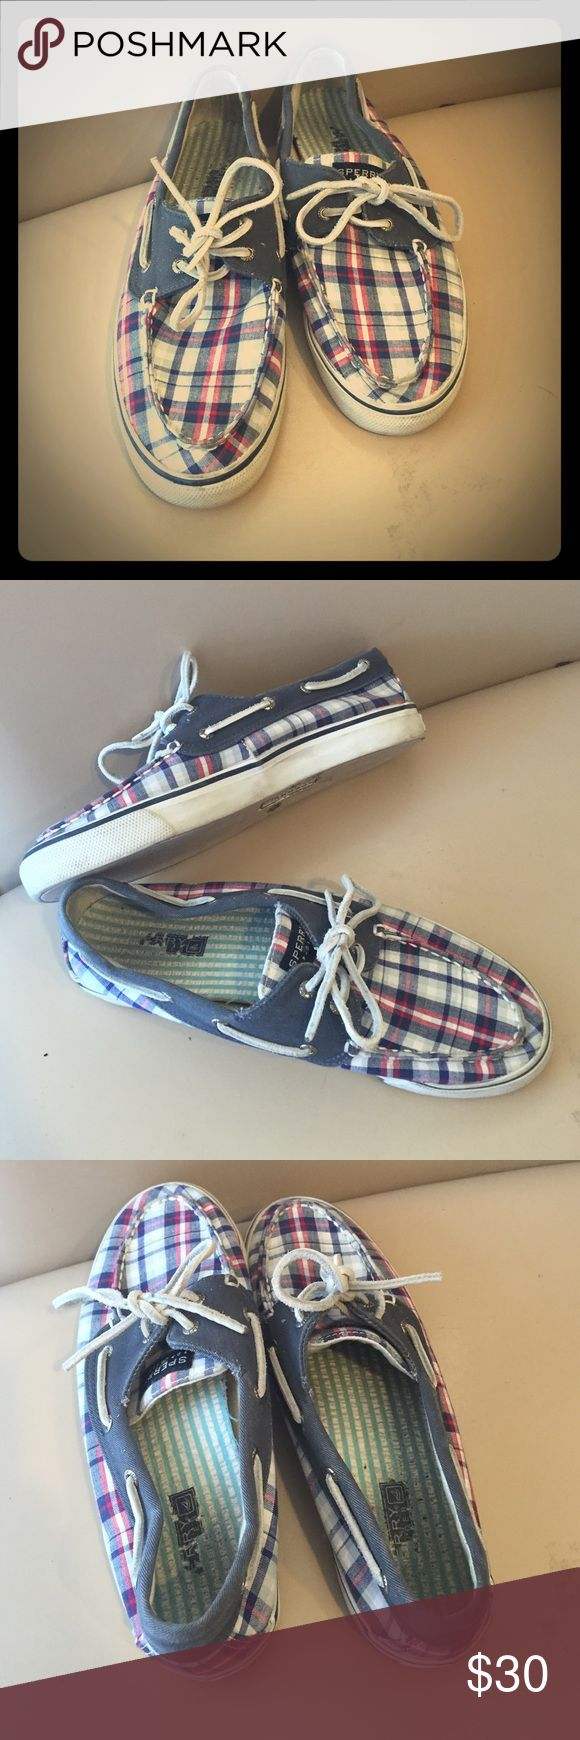 Plaid Sperry TopSider Boar Shoes Women's 9 Red White & Blue Sperry Boat Shoes in average used condition. Outsides are clean, insides show a little wear but still lots of life left, see pictures! Sperry Top-Sider Shoes Flats & Loafers